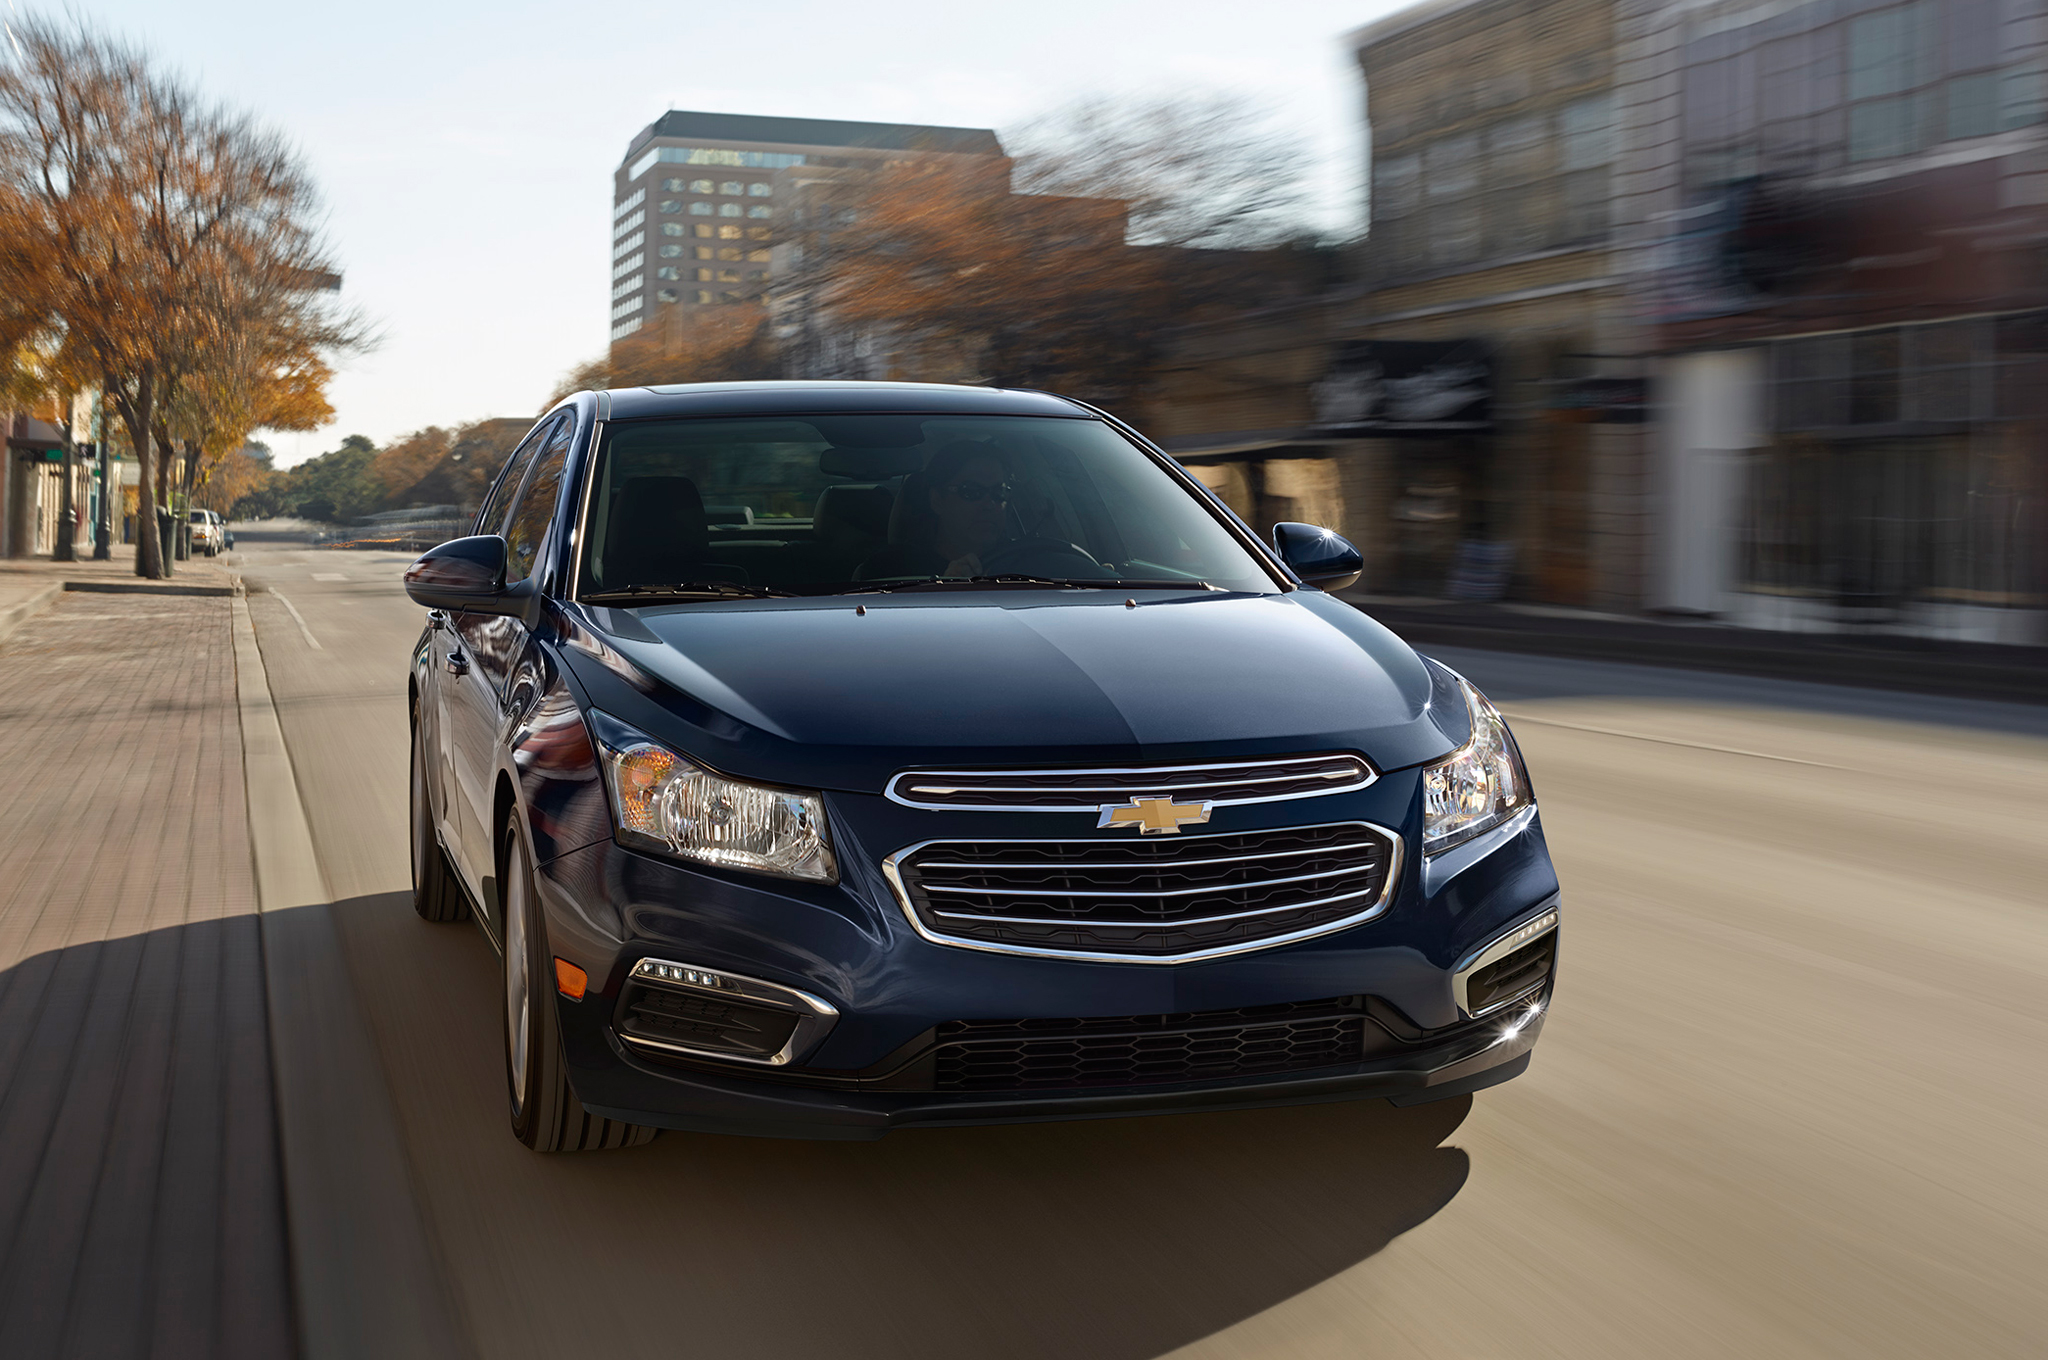 2015 Chevrolet Cruze - New Cars Clermont, FL